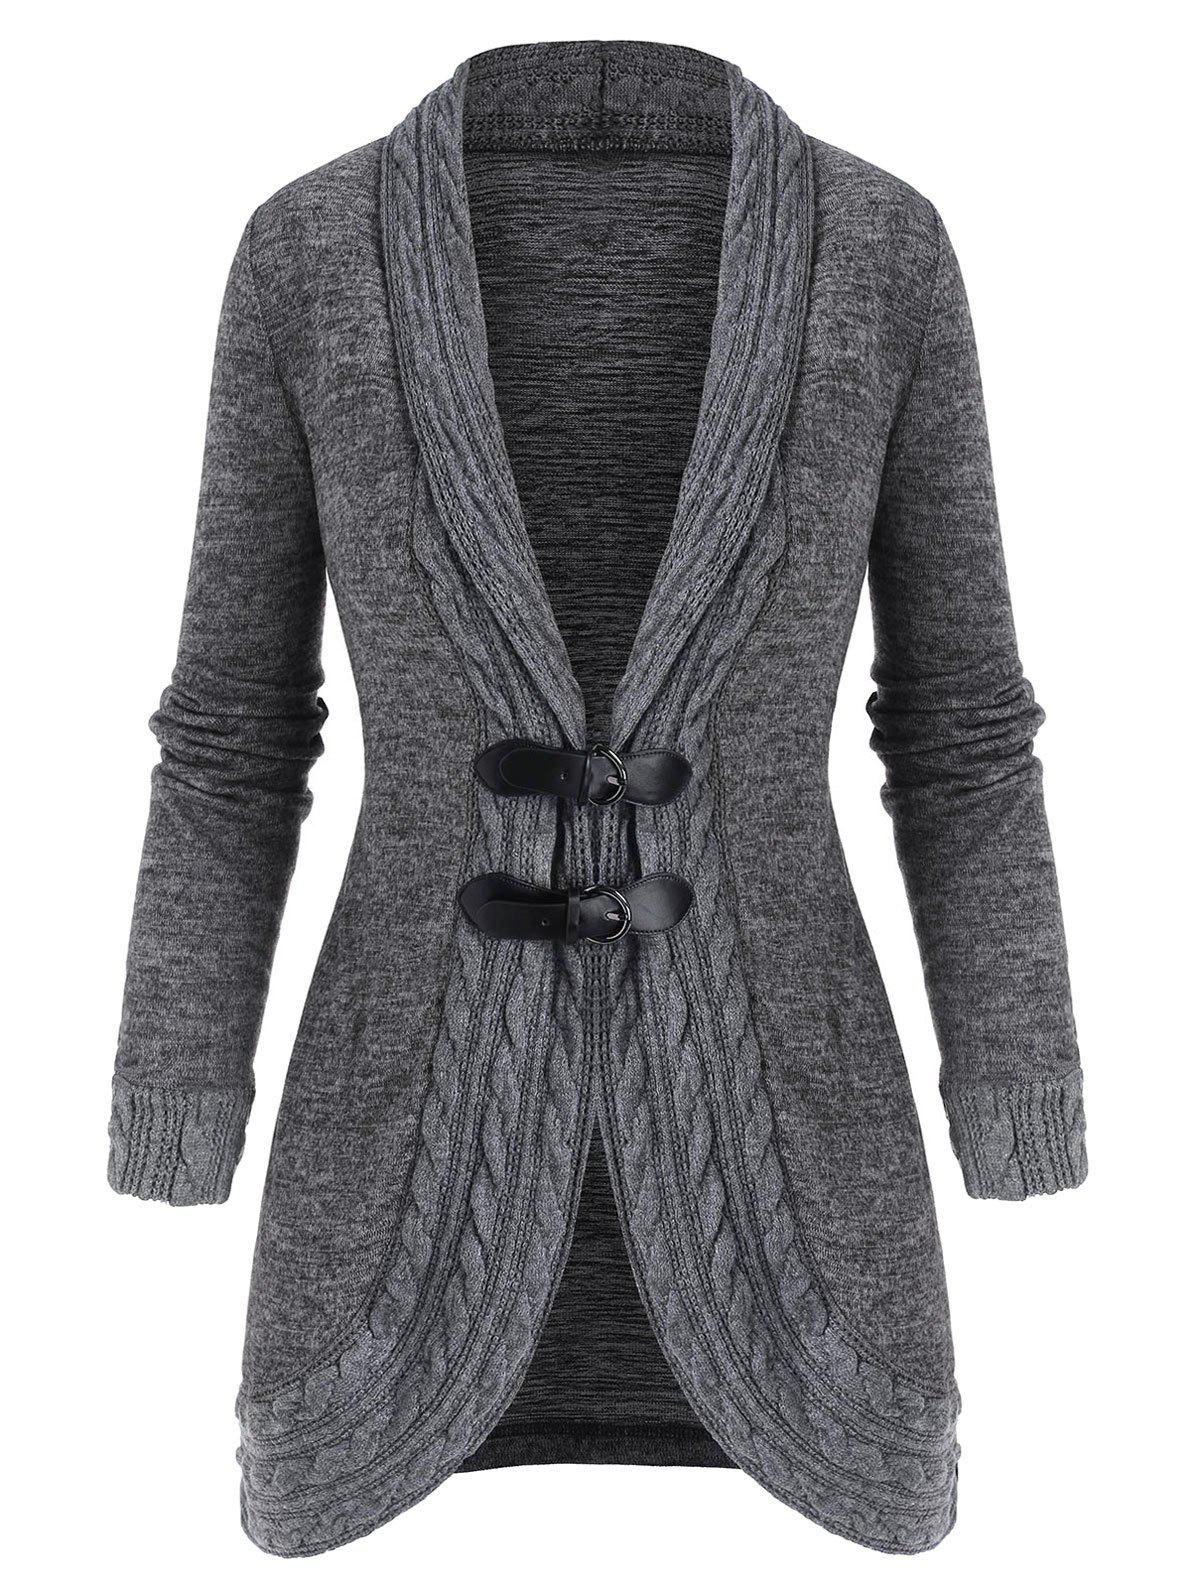 Shawl Collar Buckled Cable Knit Heathered Cardigan - LIGHT GRAY L